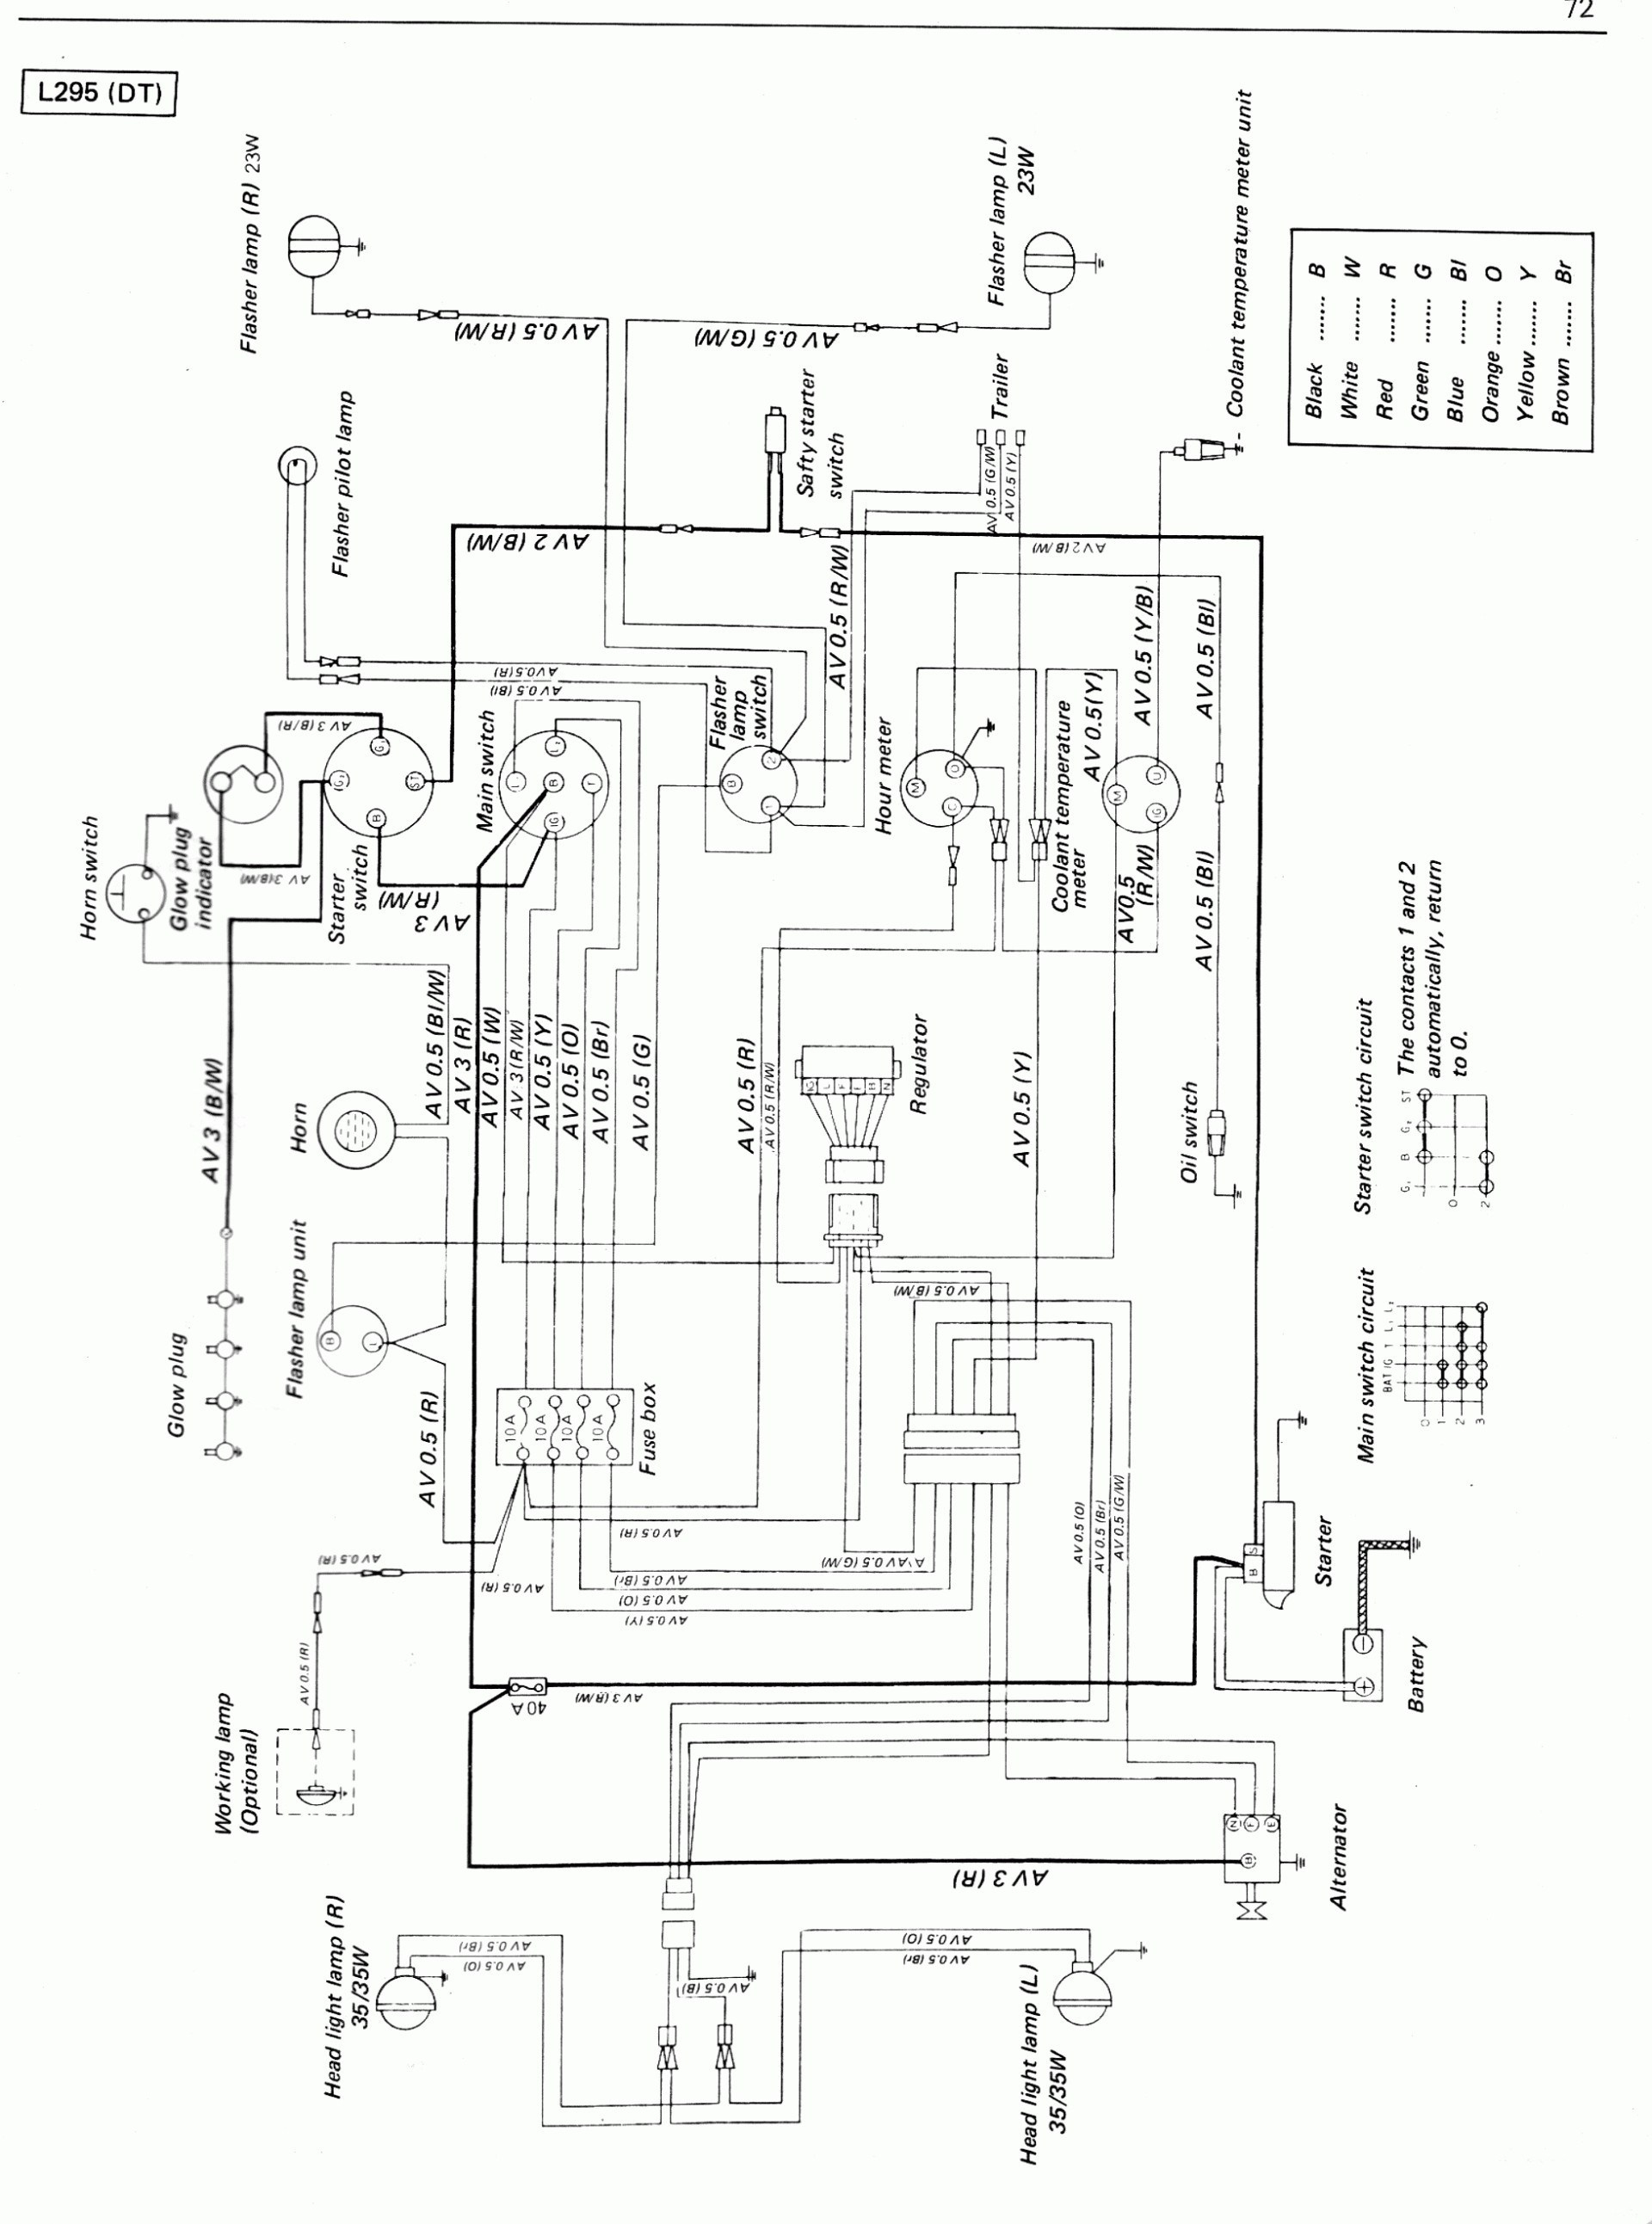 wiring diagram for kubota l3800 wiring diagram for led light for truck wire diagram for kubota 3030 | wiring diagram tutorial